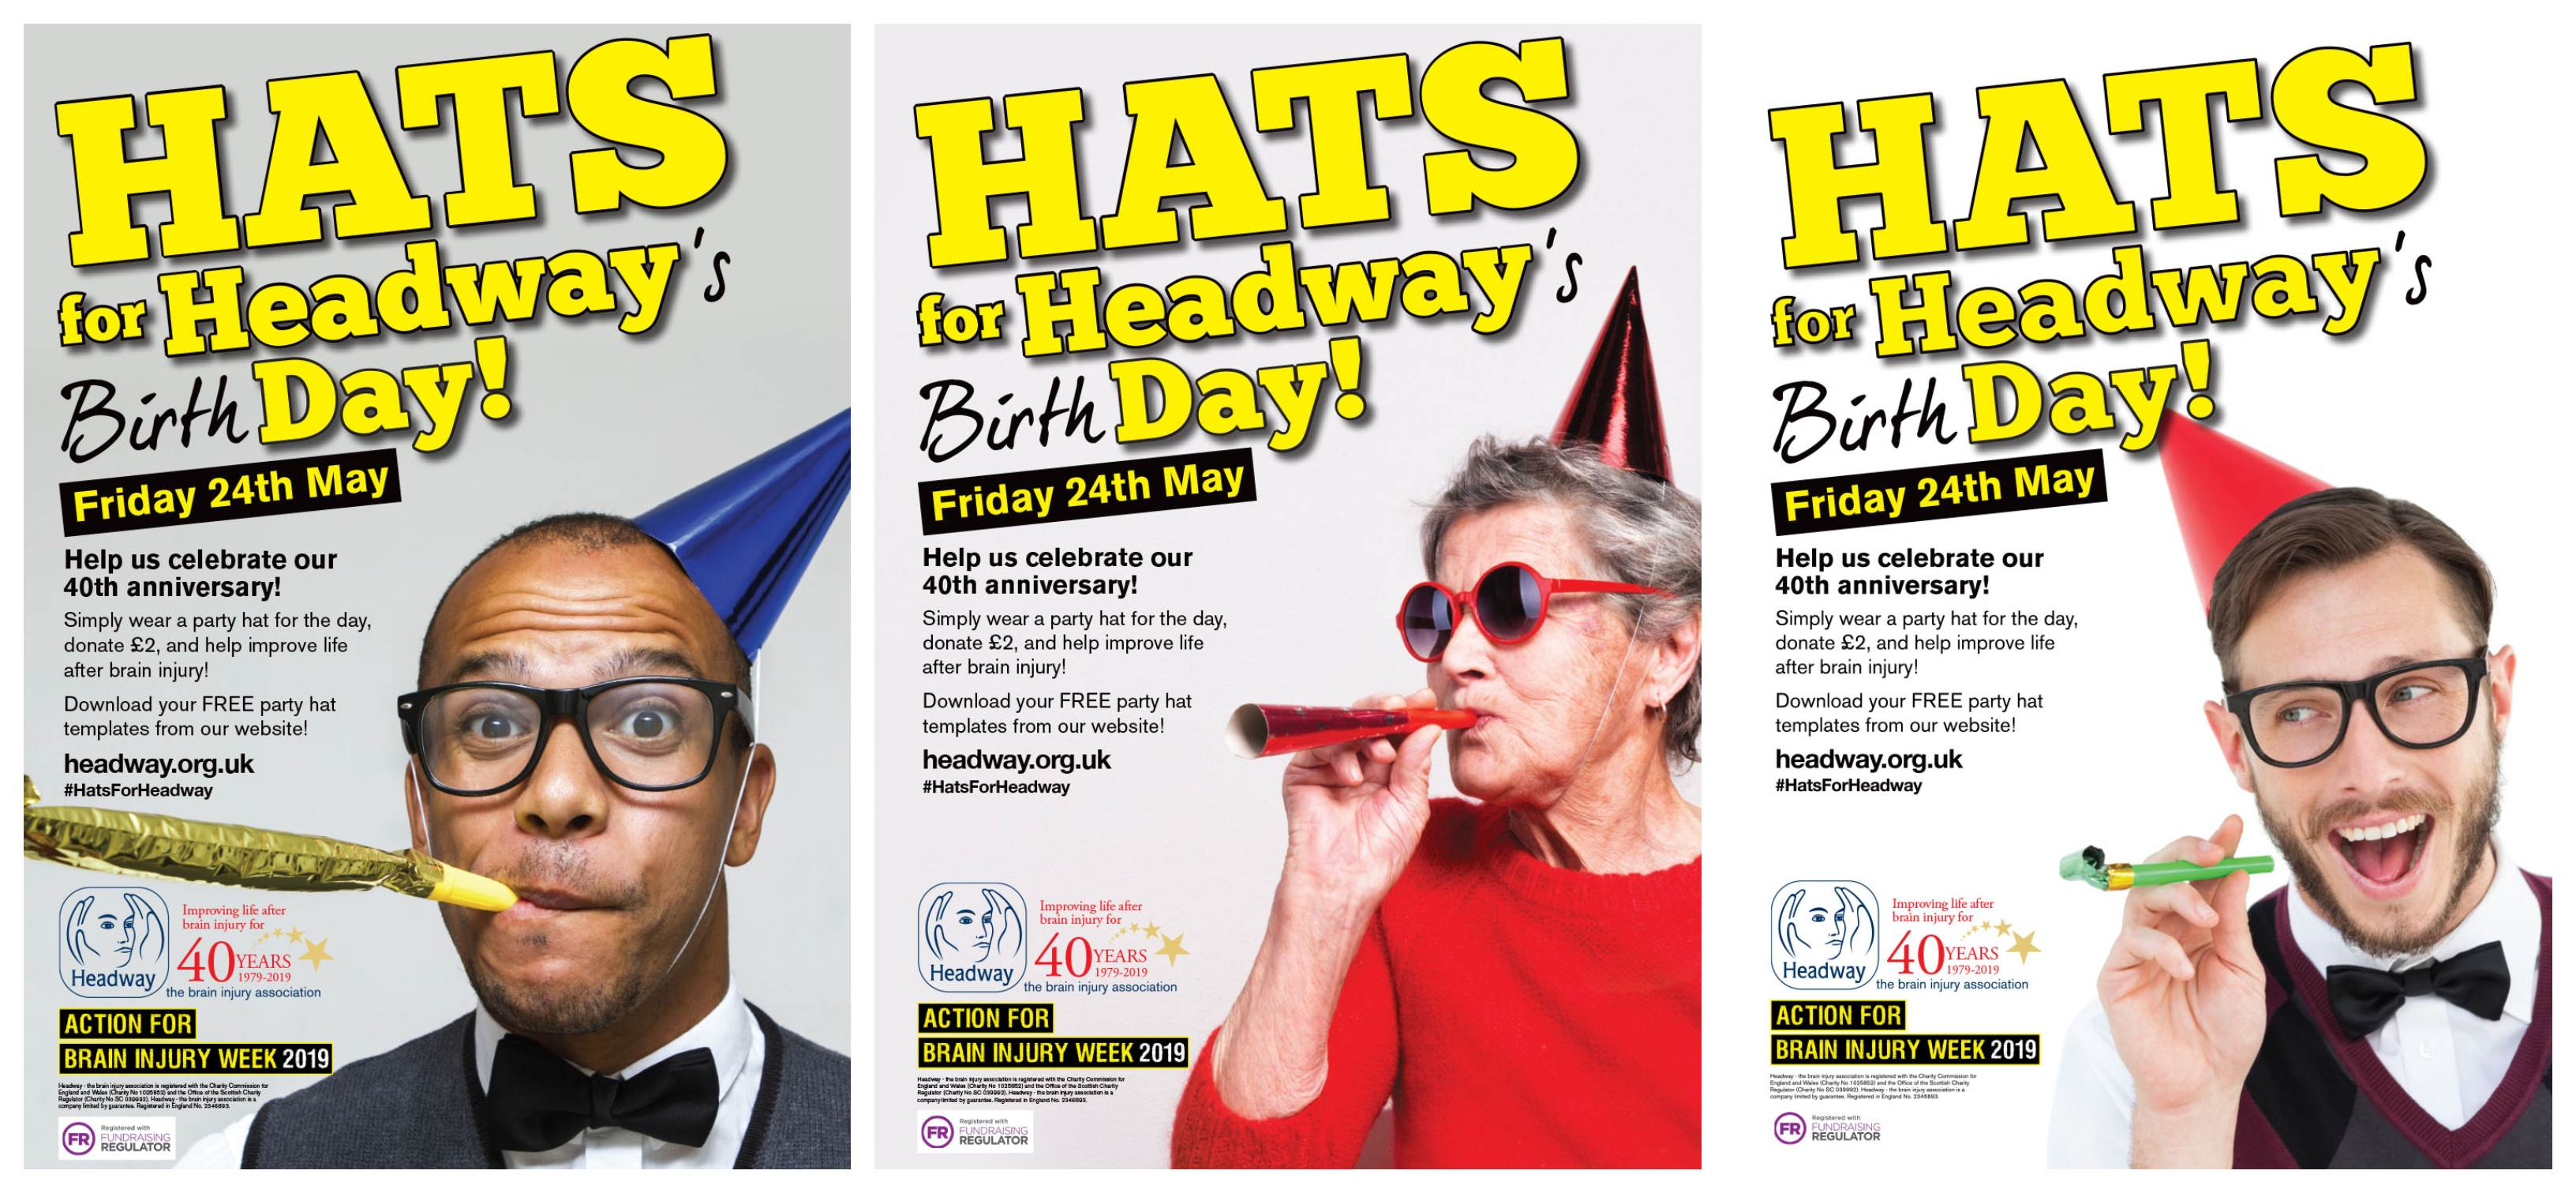 Hats for Headway's Birthday posters